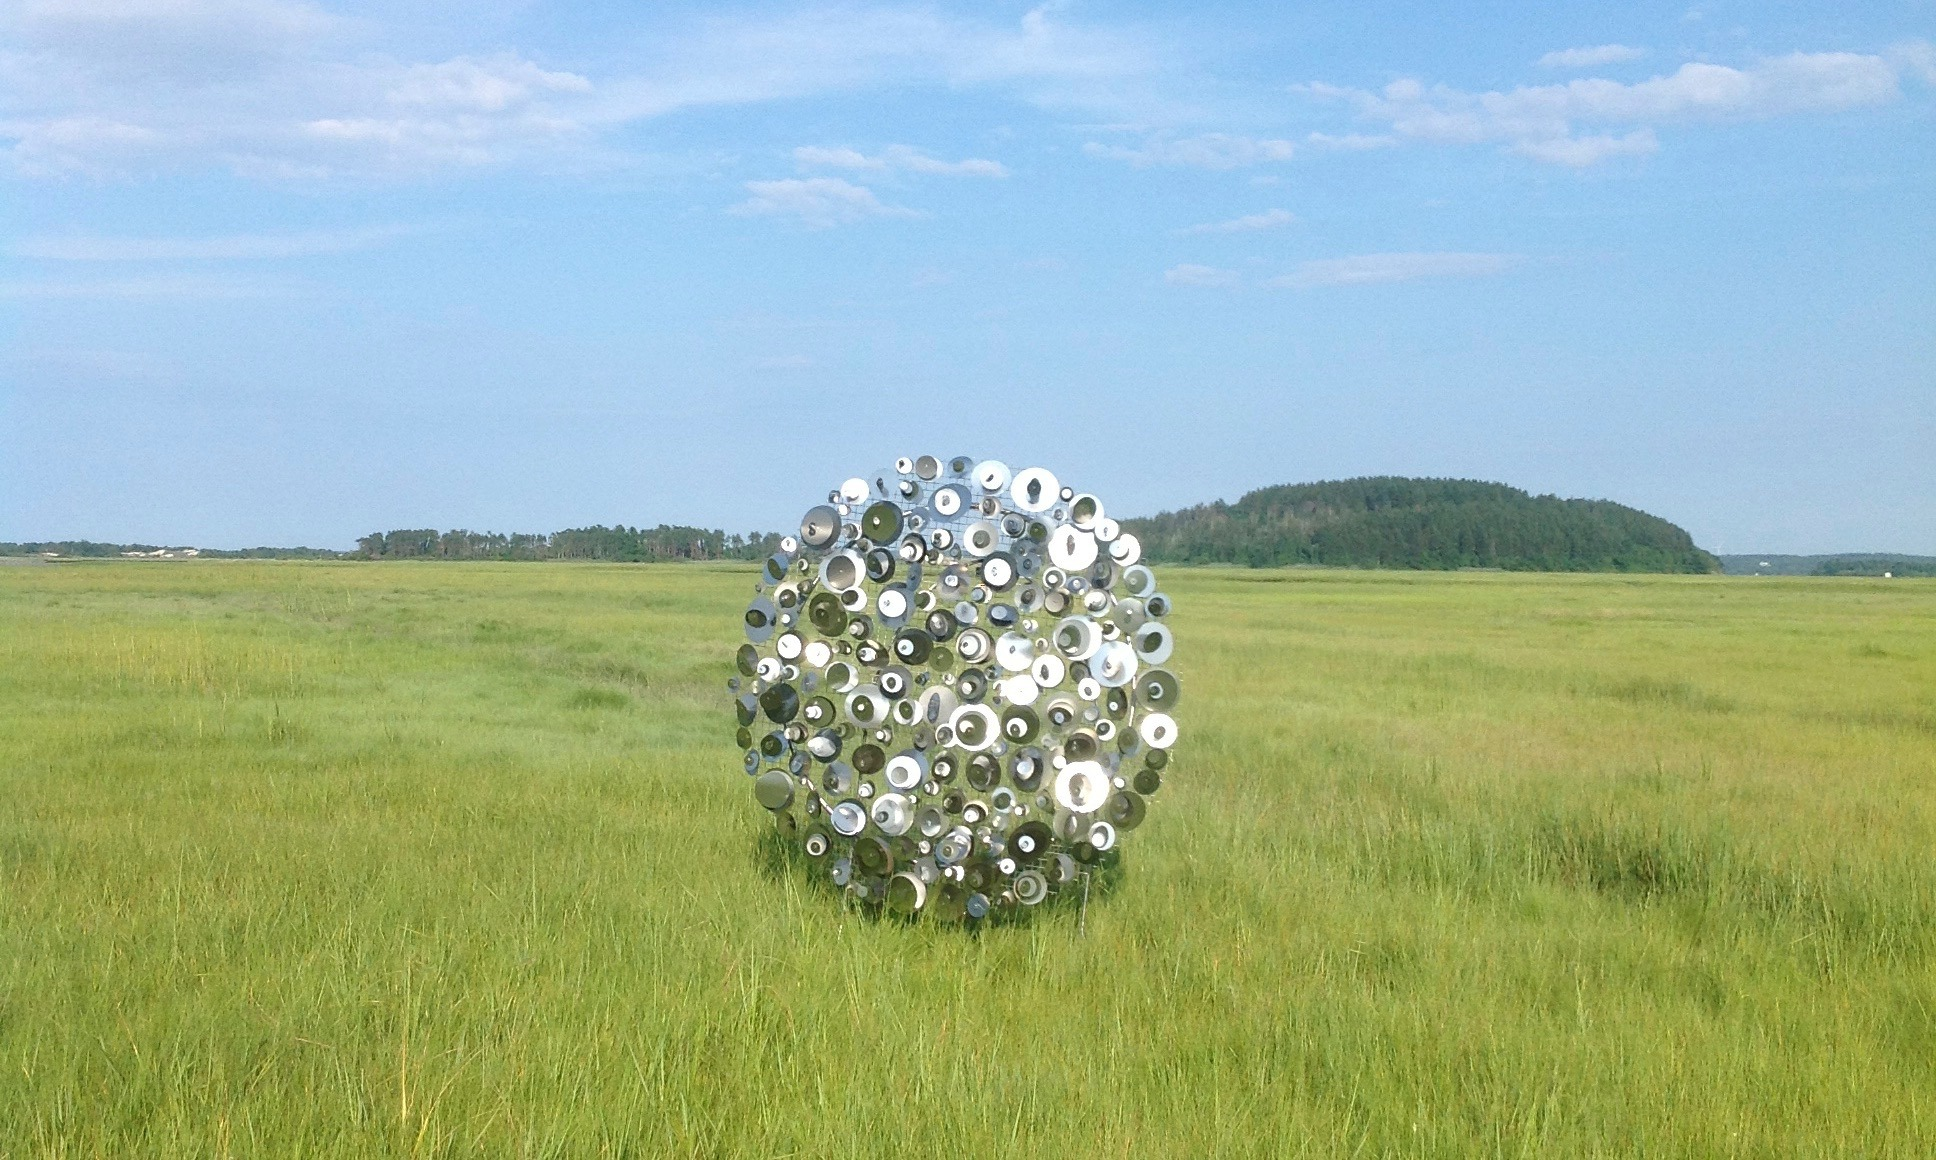 Silver circle sculpture from Wind, Waves and Light, by artist George Sherwood